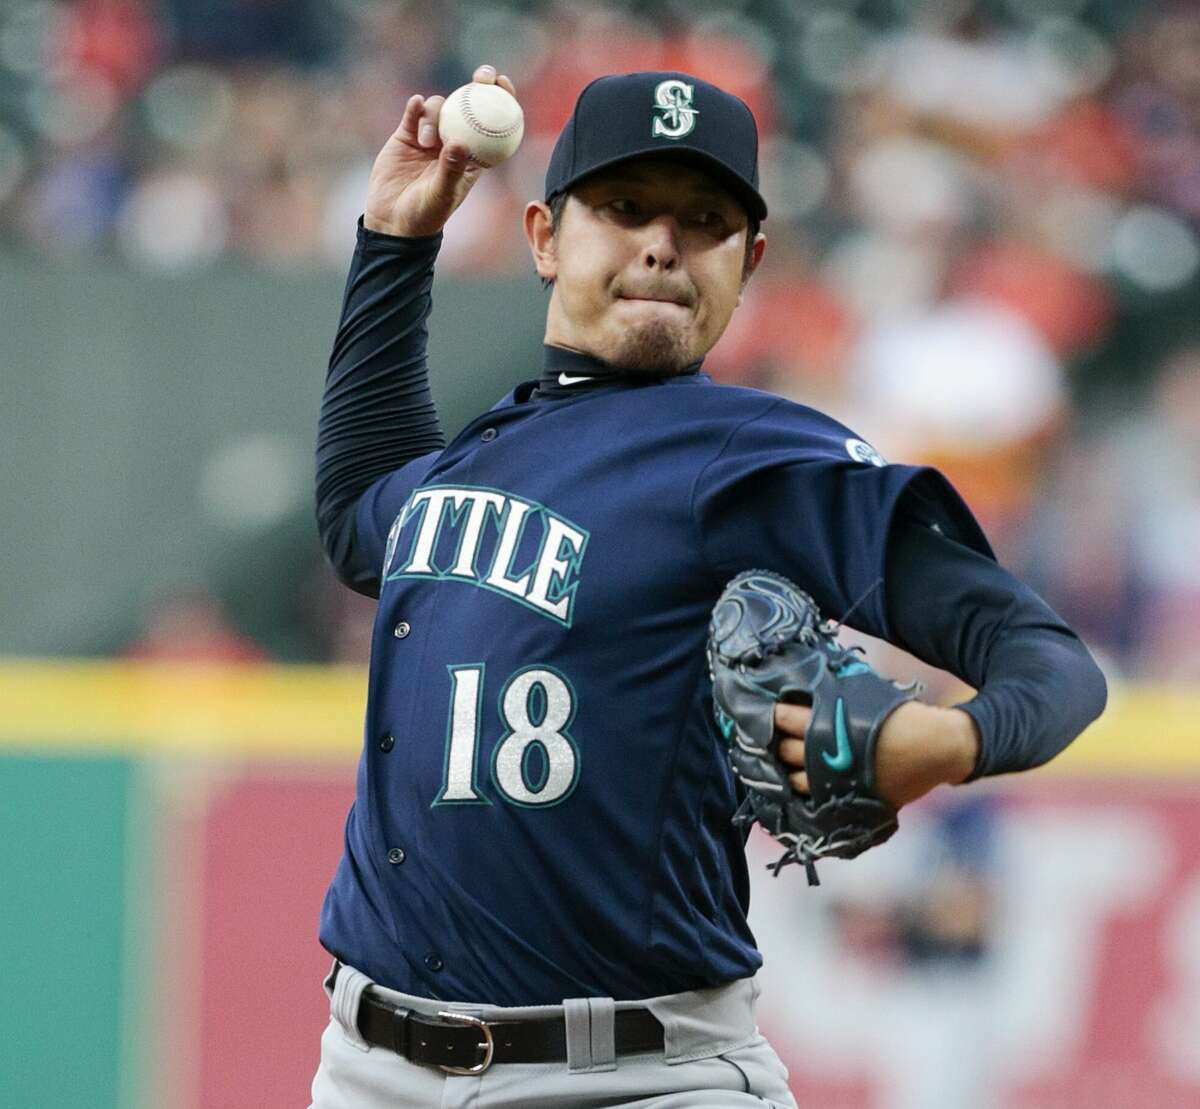 HOUSTON, TX - APRIL 04: Hisashi Iwakuma #18 of the Seattle Mariners pitches in the first inning against the Houston Astros at Minute Maid Park on April 4, 2017 in Houston, Texas. (Photo by Bob Levey/Getty Images)